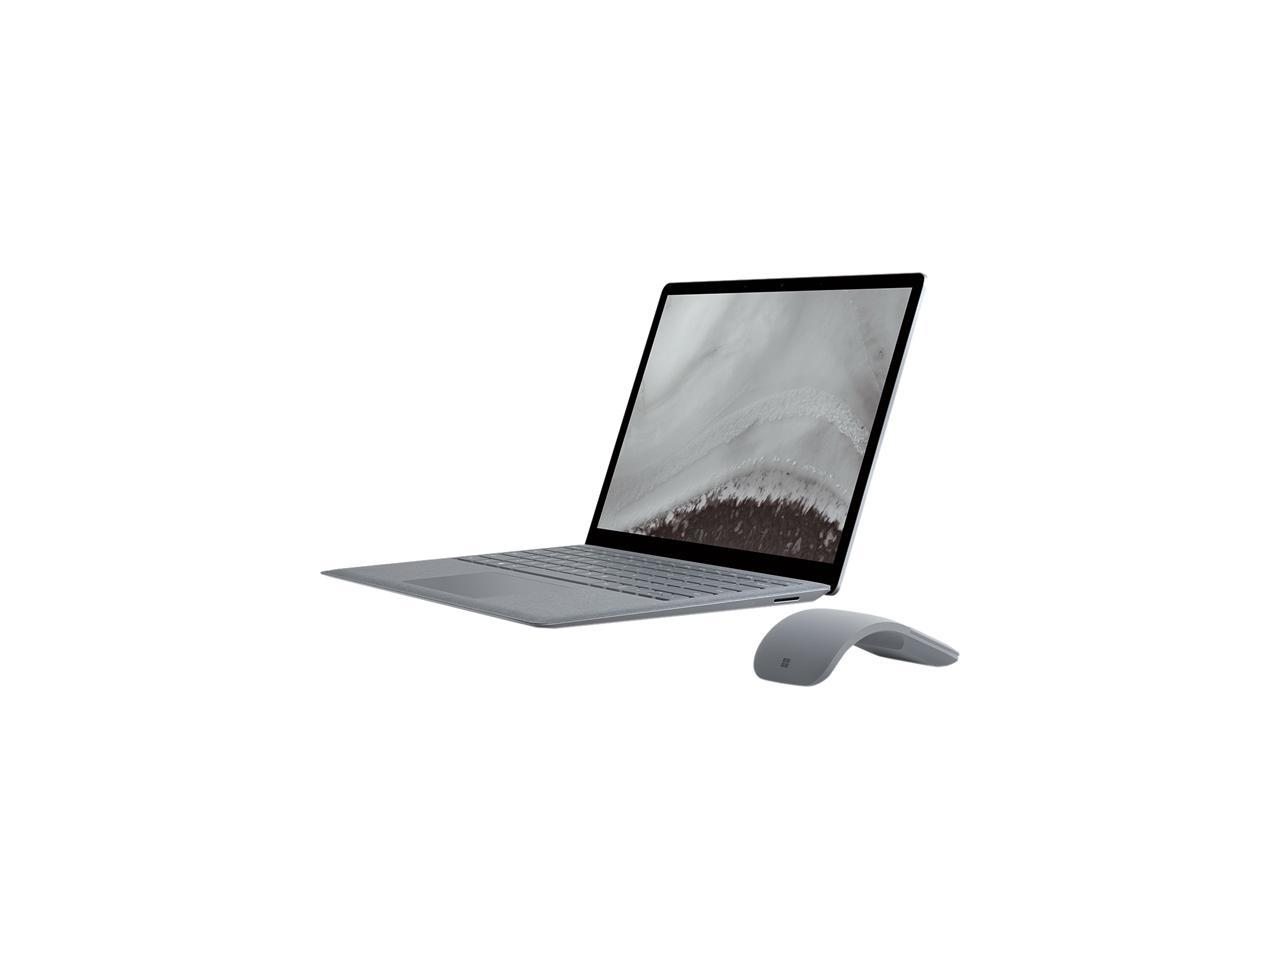 Microsoft Surface Laptop 2 - Notebookcheck net External Reviews